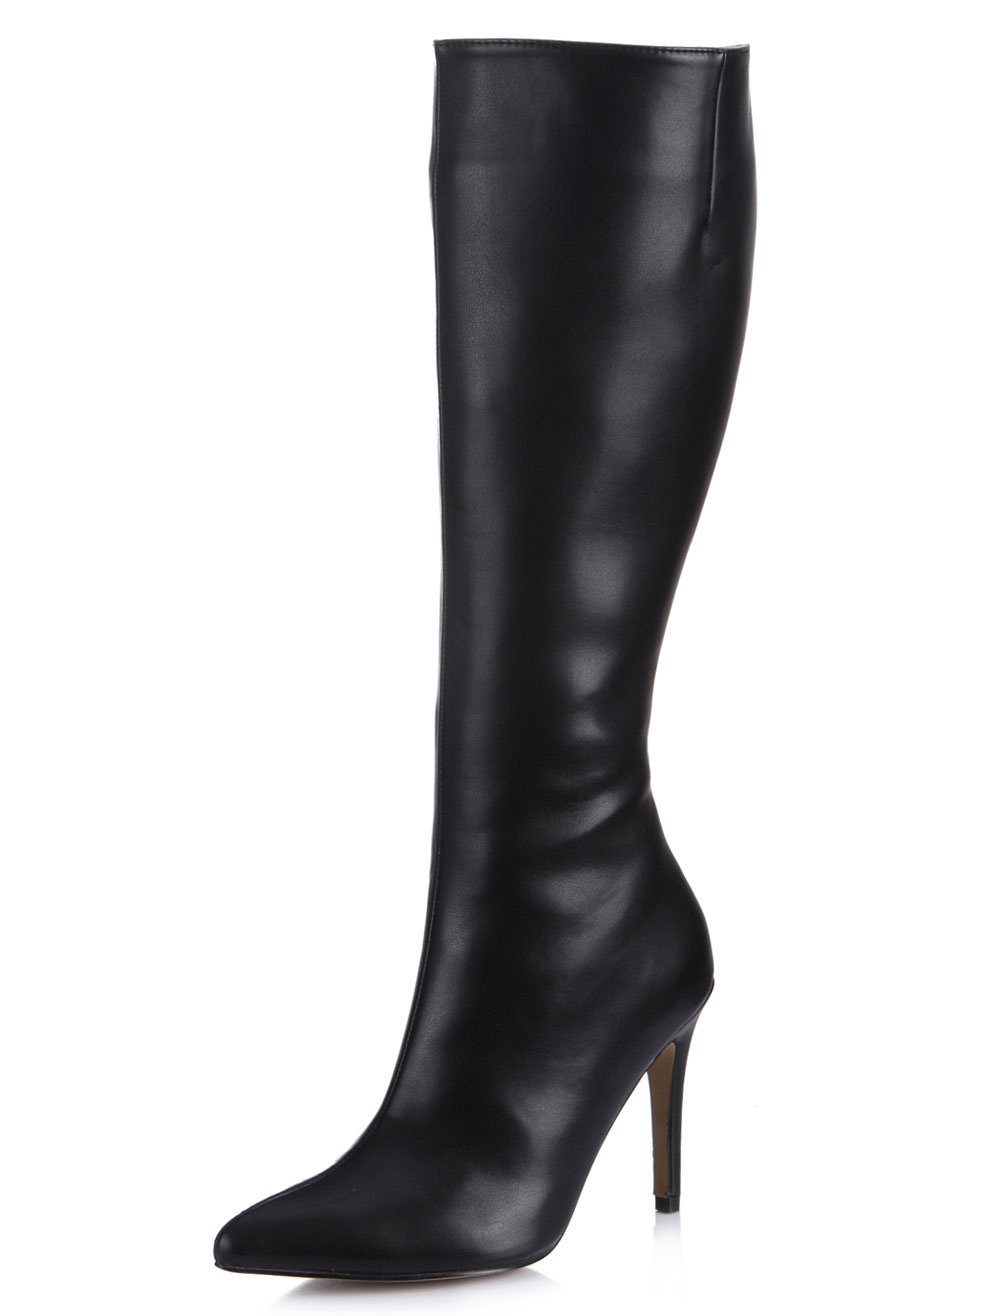 Milanoo / Black Pointed Toe Stiletto Heel Zipper PU Leather Stylish Knee Length Boots for Women